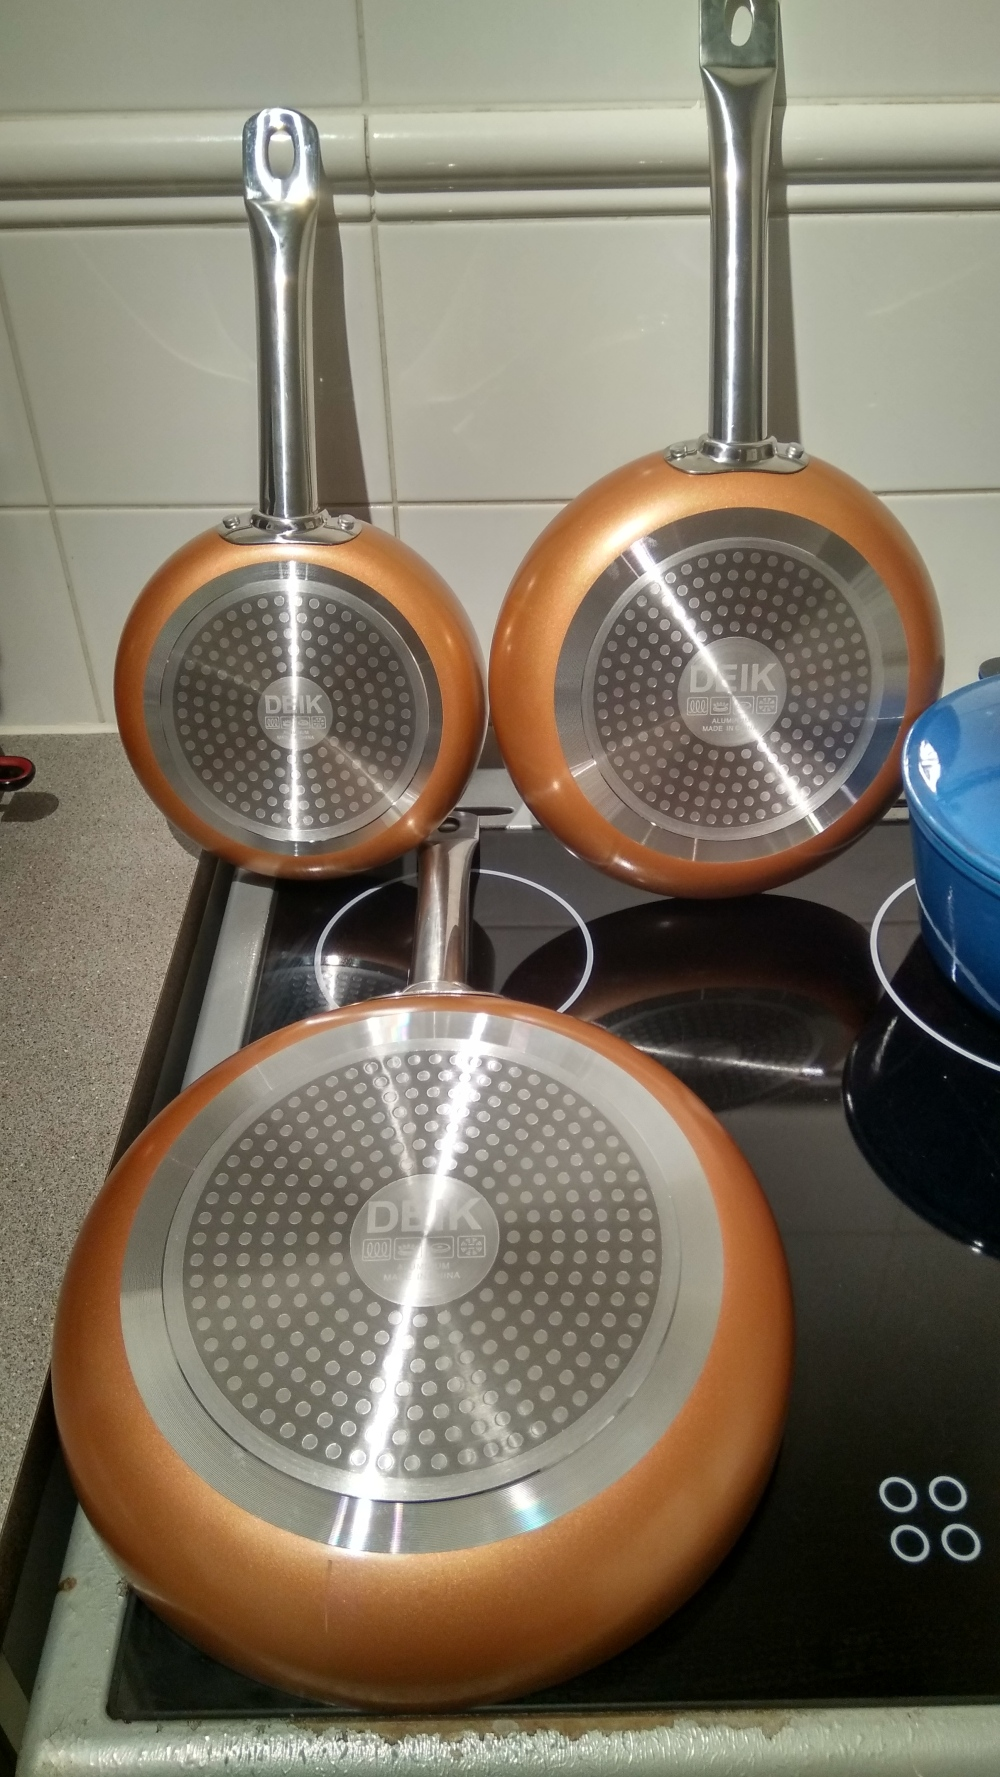 Set of 3 copper pans from the bottom